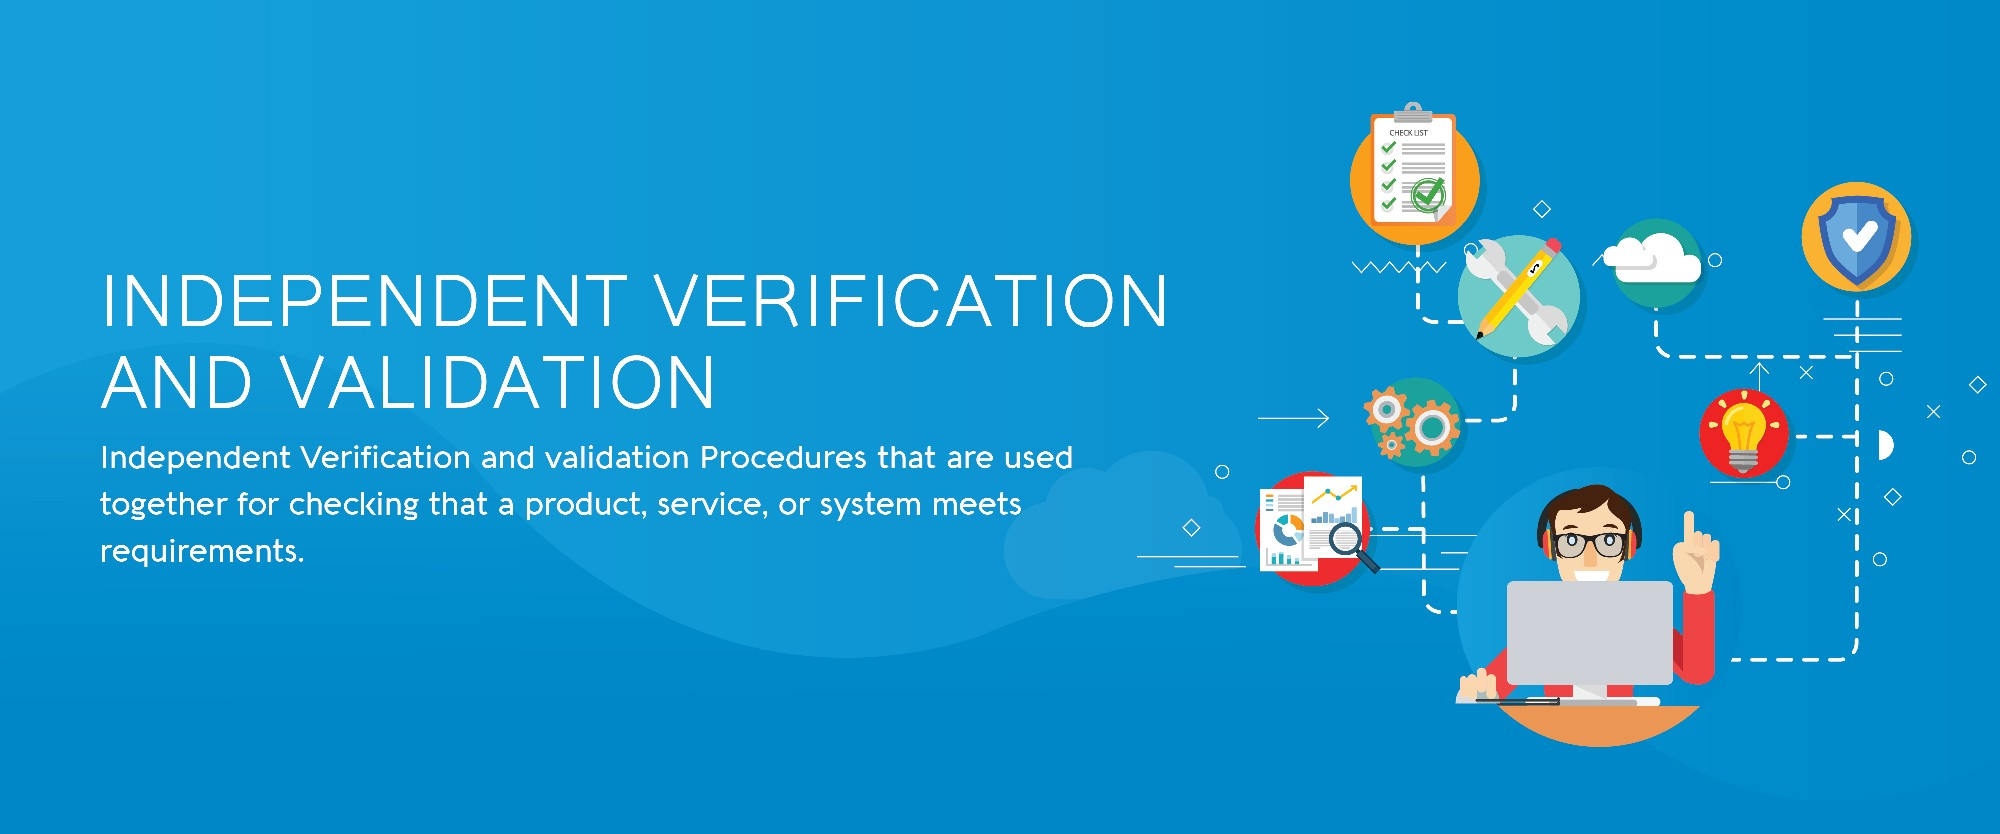 Independent Verification and validation-01